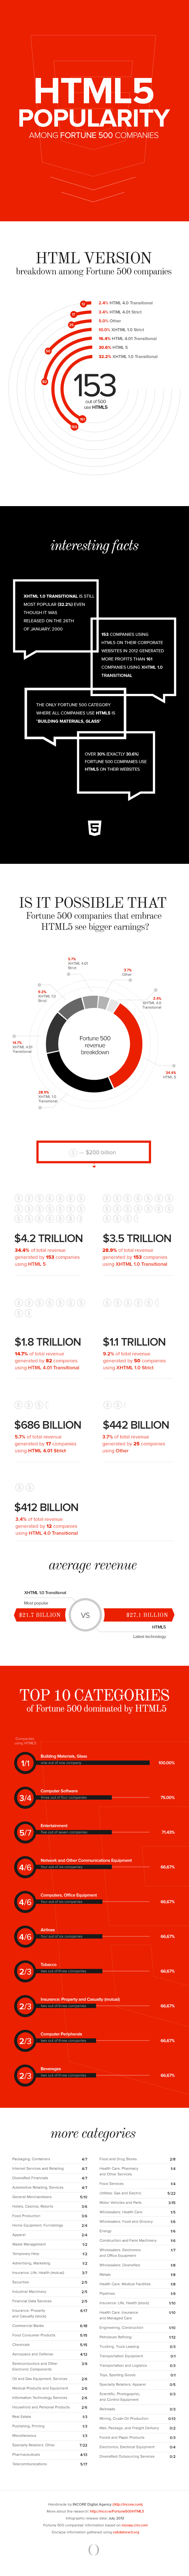 HTML5 Popularity Among Fortune 500 Companies